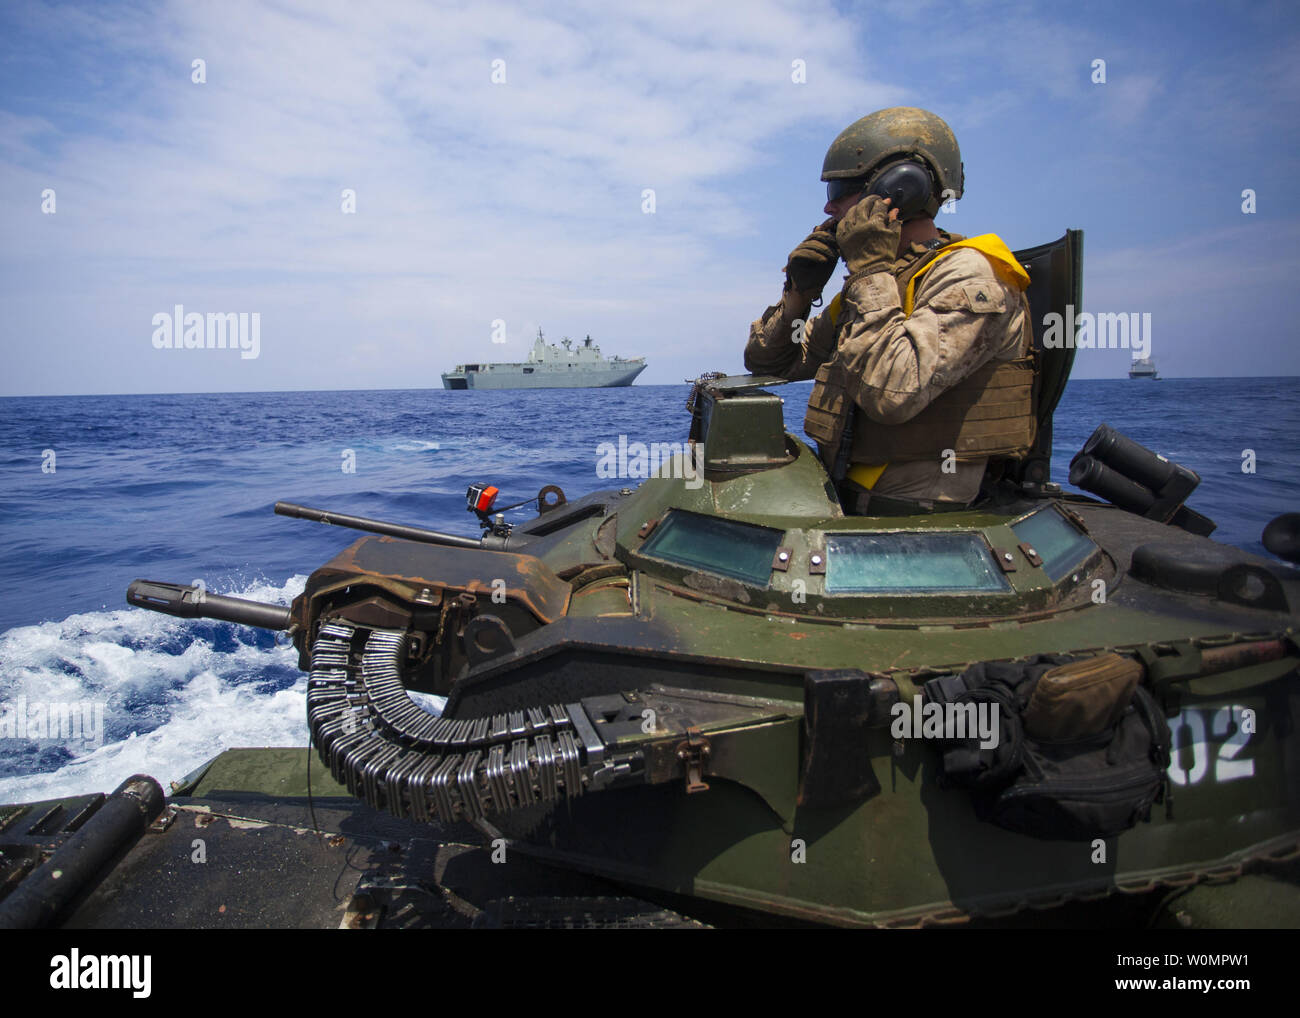 Cpl. Ryan Dills communicates with other assault amphibious vehicles while traveling from amphibious assault ship USS San Diego to Royal Australian Navy Canberra class amphibious ship HMAS Canberra (L02) in the Pacific Ocean, on July, 18 2016. The Marines are participating in Rim of the Pacific (RIMPAC) 2016, a multinational military exercise, from June 29 to August 4 in and around the Hawaiian Islands. Photo by Christopher Giannetti/U.S. Marine Corps/UPI Stock Photo